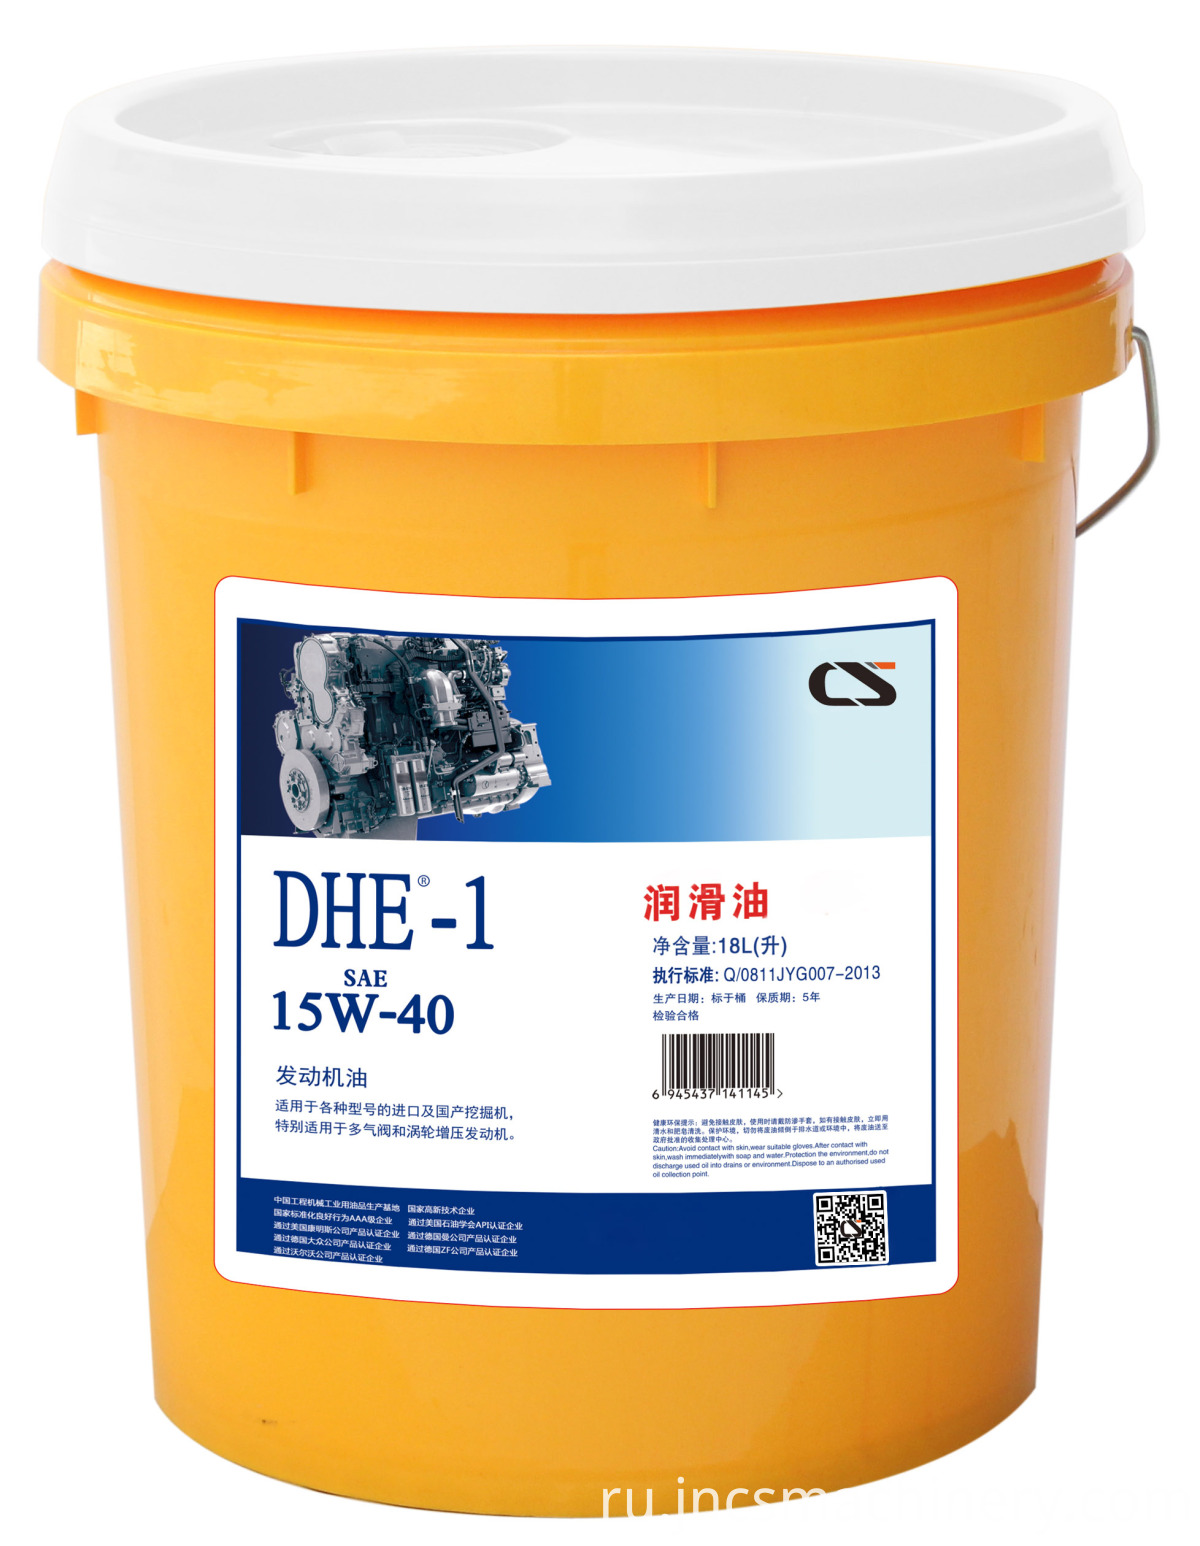 Shantui Excavator Lubricating Oils engine oil DHE-1 SAE 15W-40